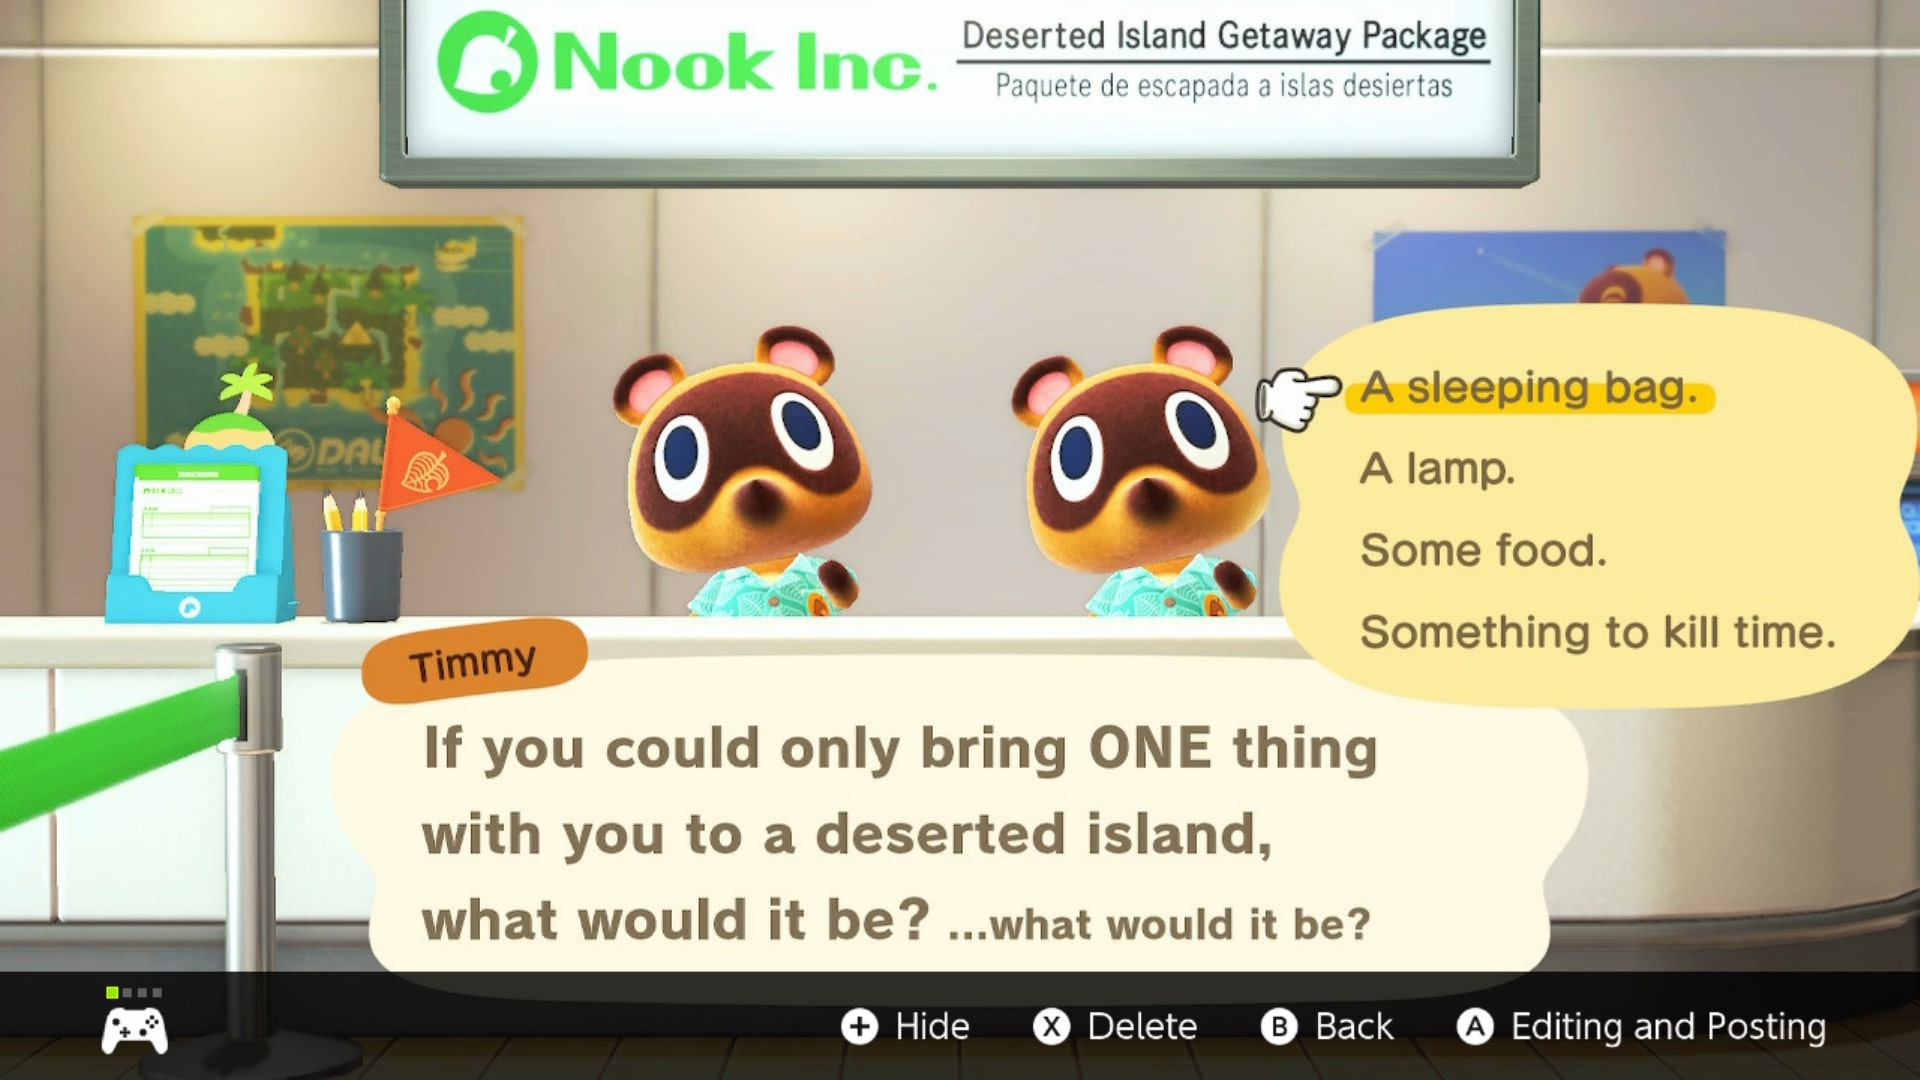 Desnudarse Príncipe cuenco  Animal Crossing New Horizons: 'If You Could Only Bring ONE Thing With You'  Question - What Does It Mean? | USgamer